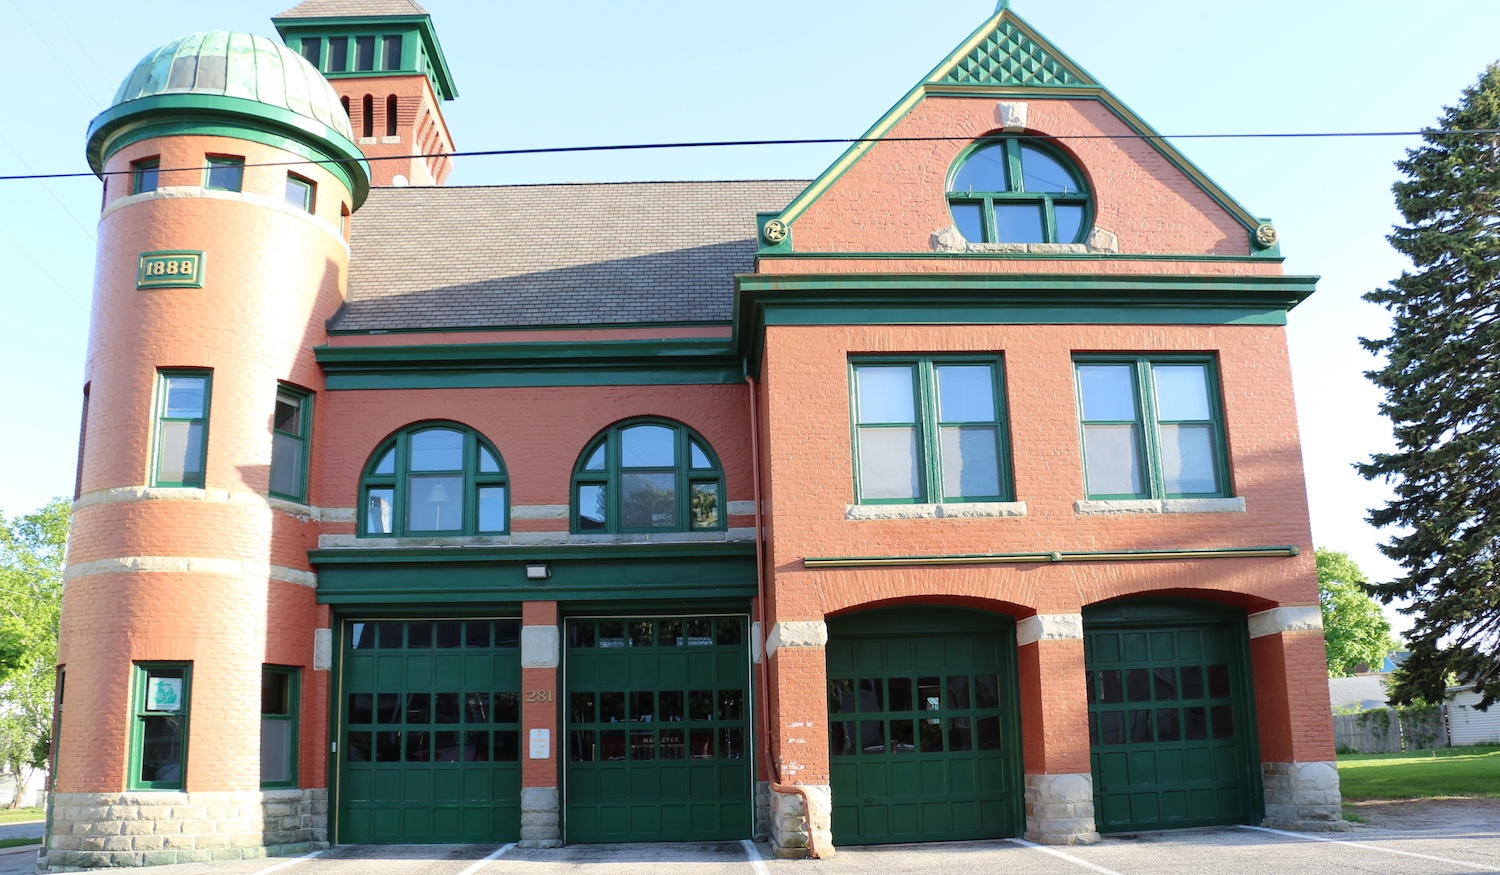 Manistee Fire Station is the World's Oldest Continuously